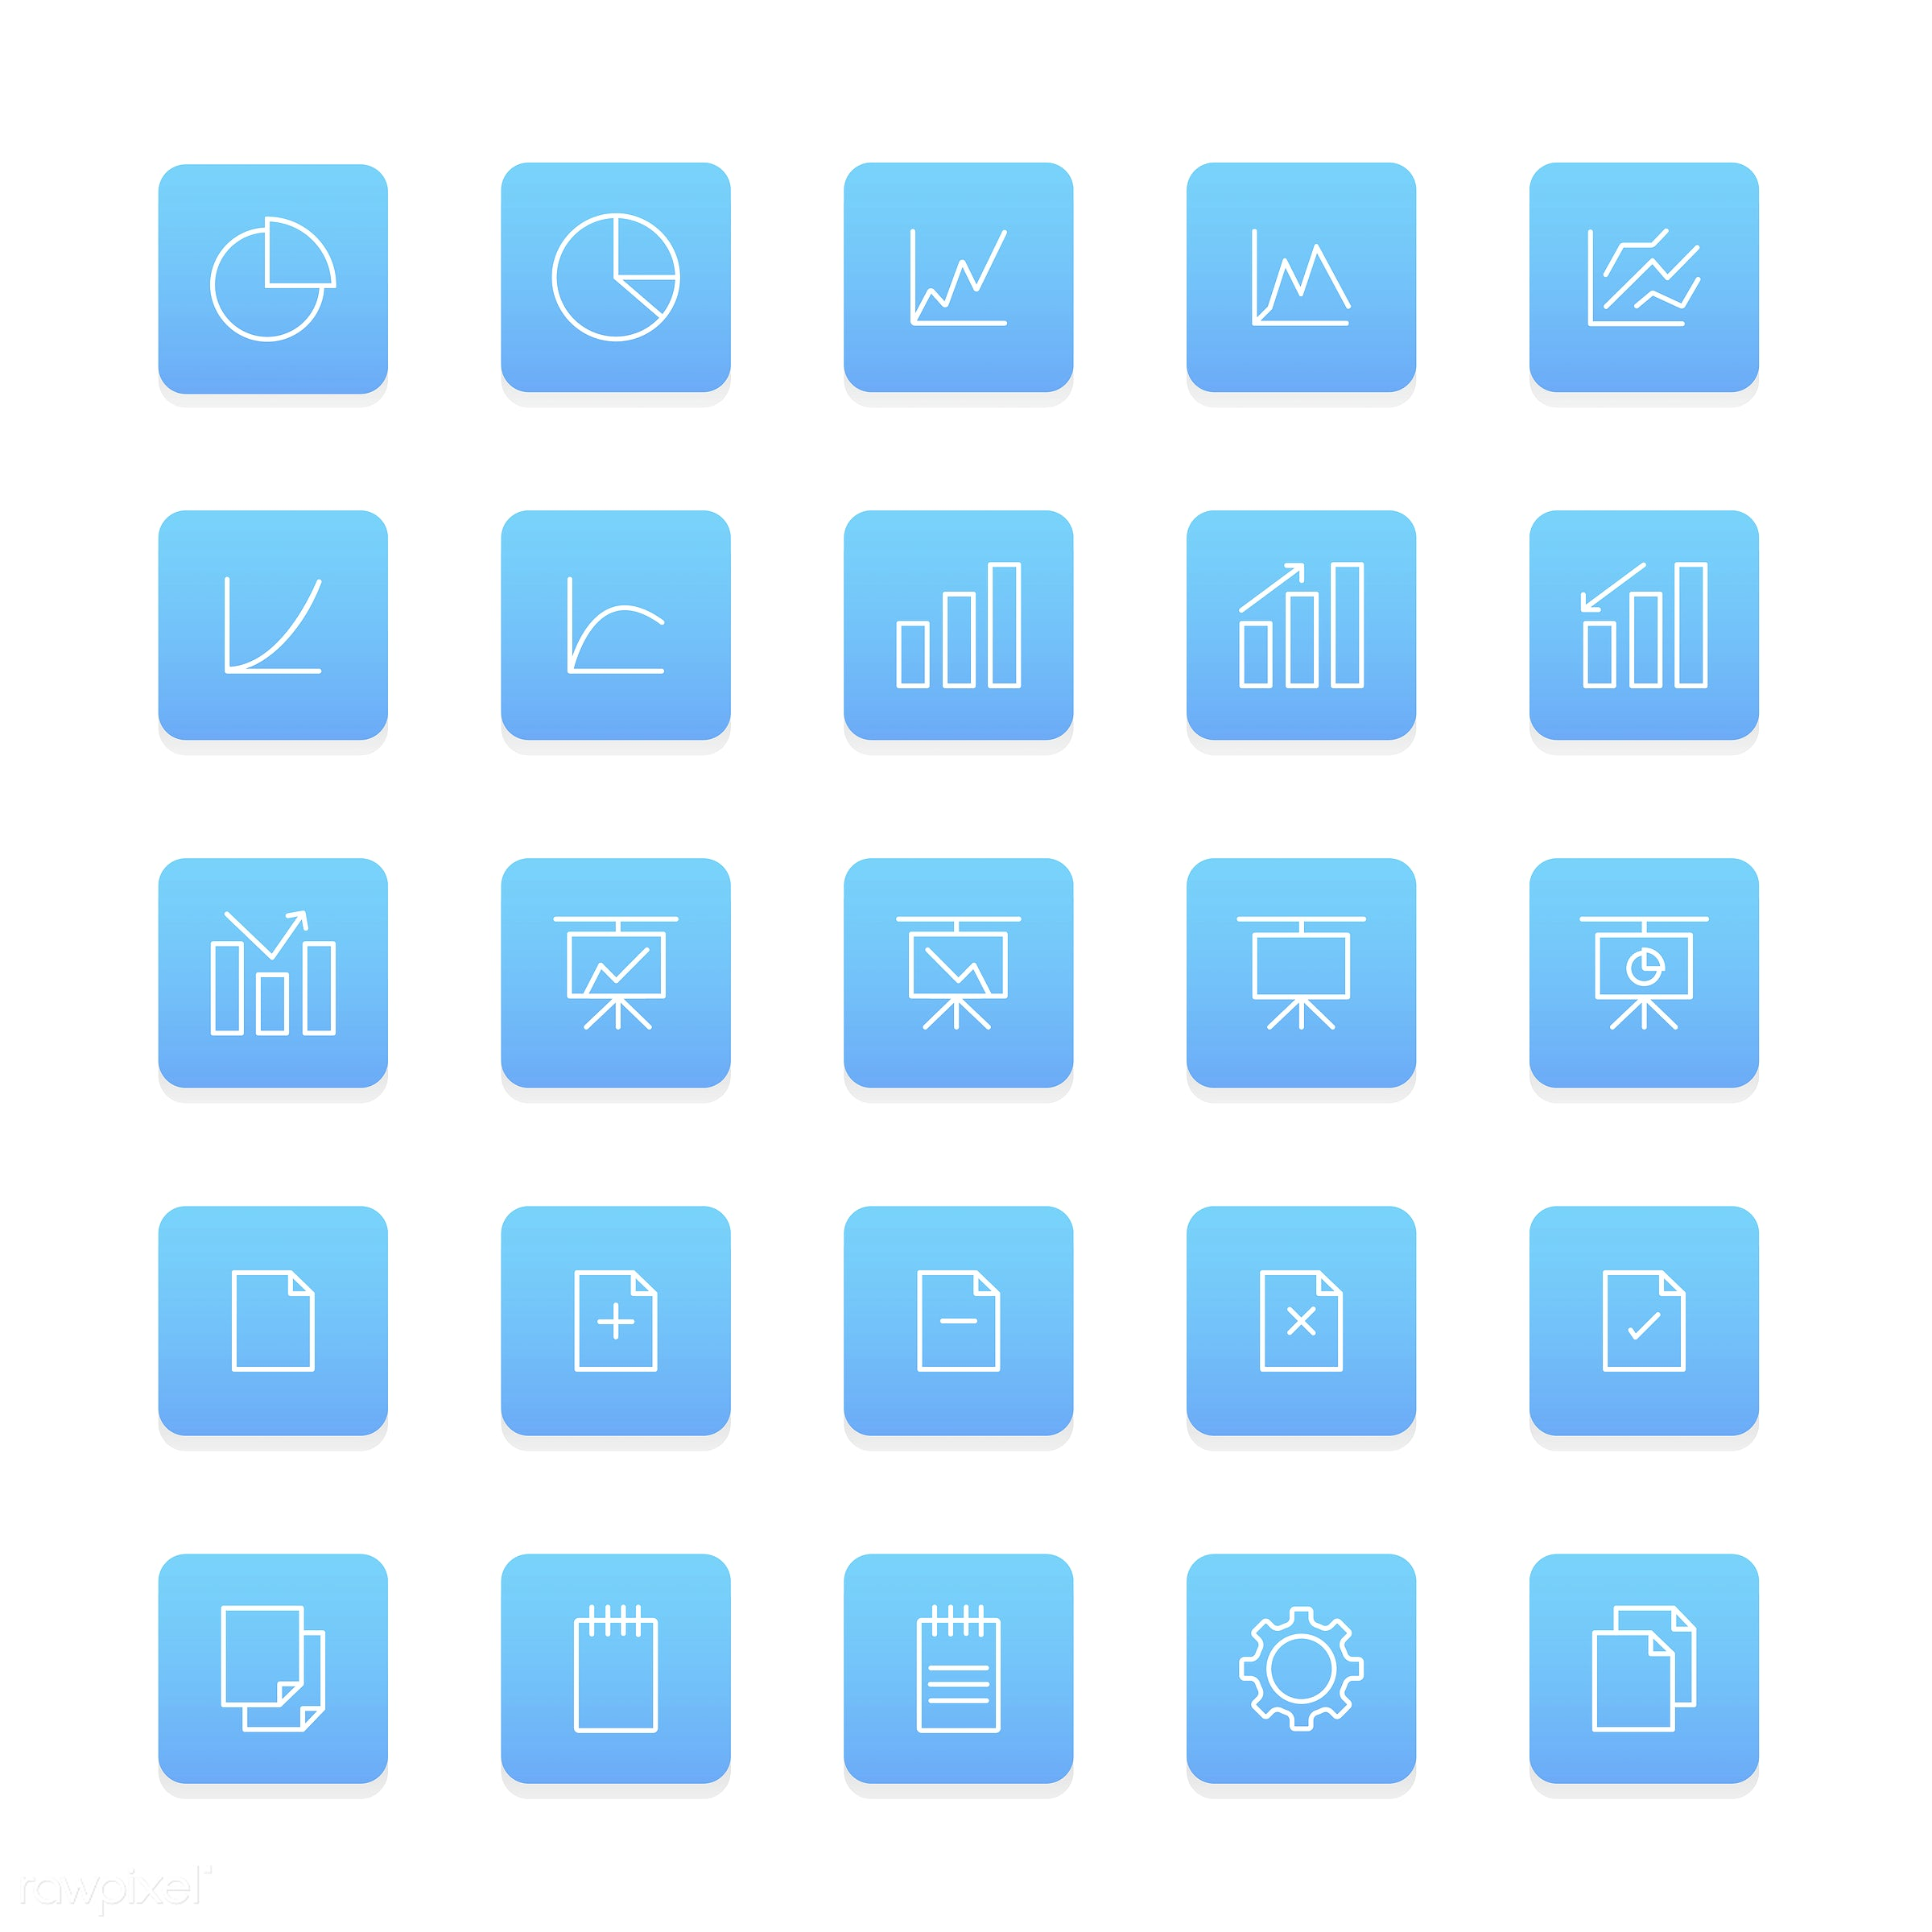 Vector set of business icons - collection, design, flat, graphic, icon, illustration, isolated, layout, platform, set, style...